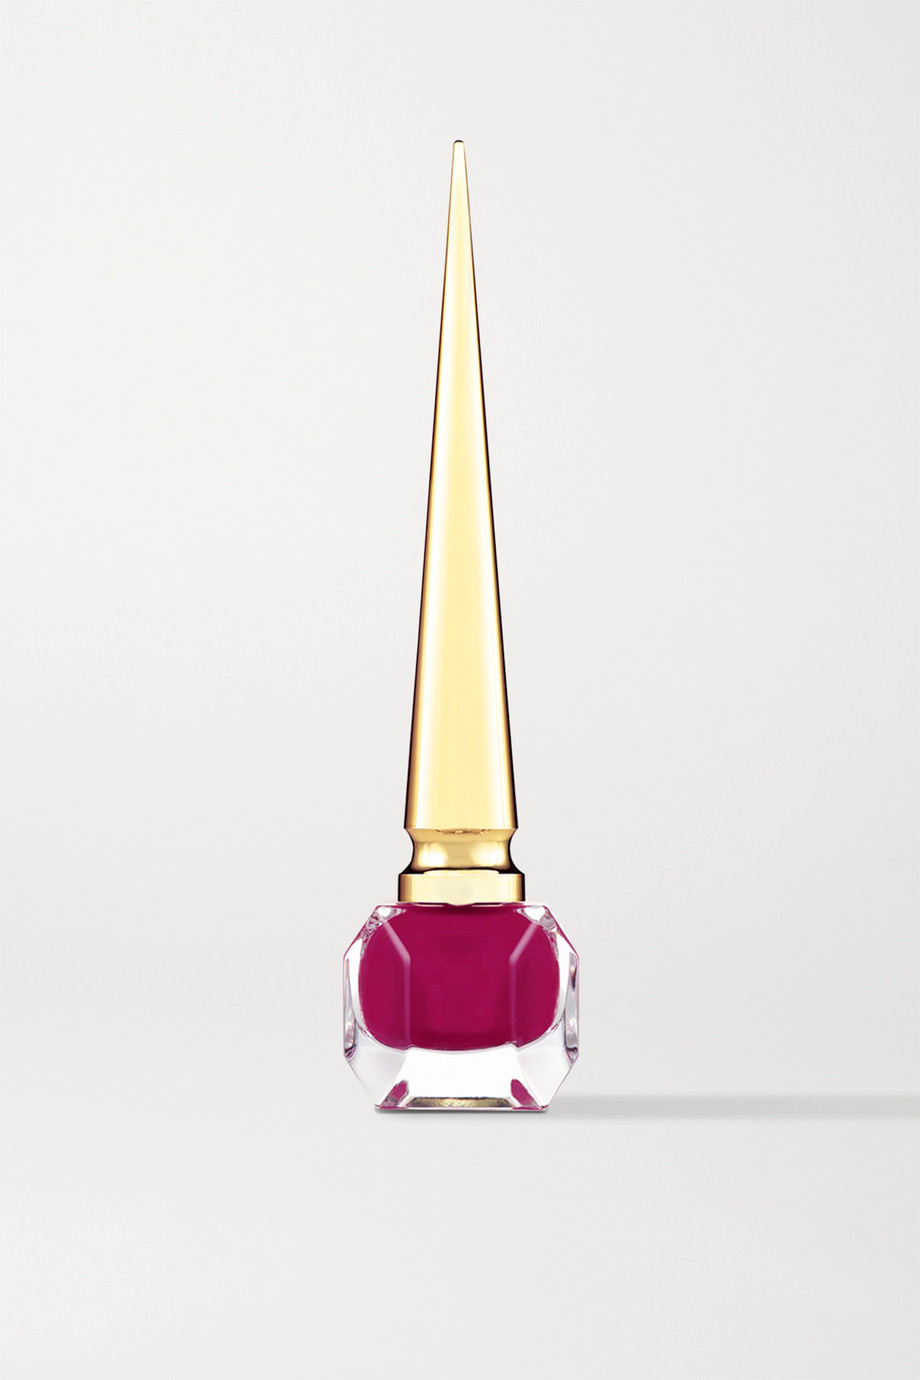 Christian Louboutin Beauty Nail Color - Delicotte